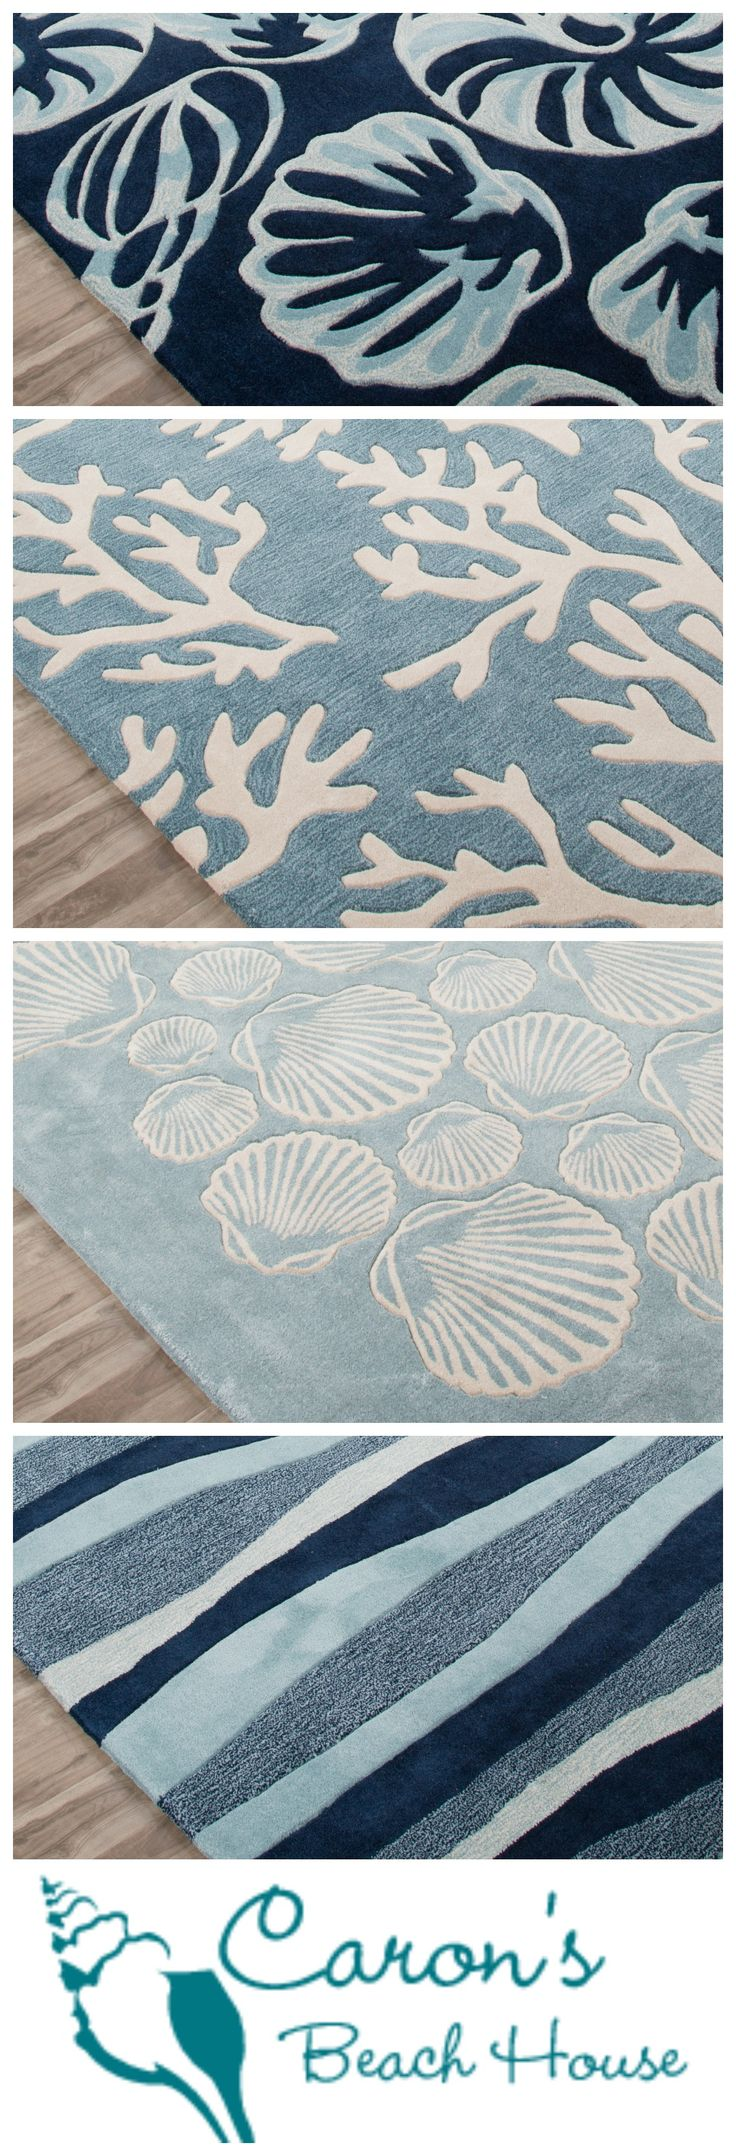 Best Ocean Bathroom Decor Ideas On Pinterest Ocean Bathroom - Beach themed bathroom rugs for bathroom decor ideas